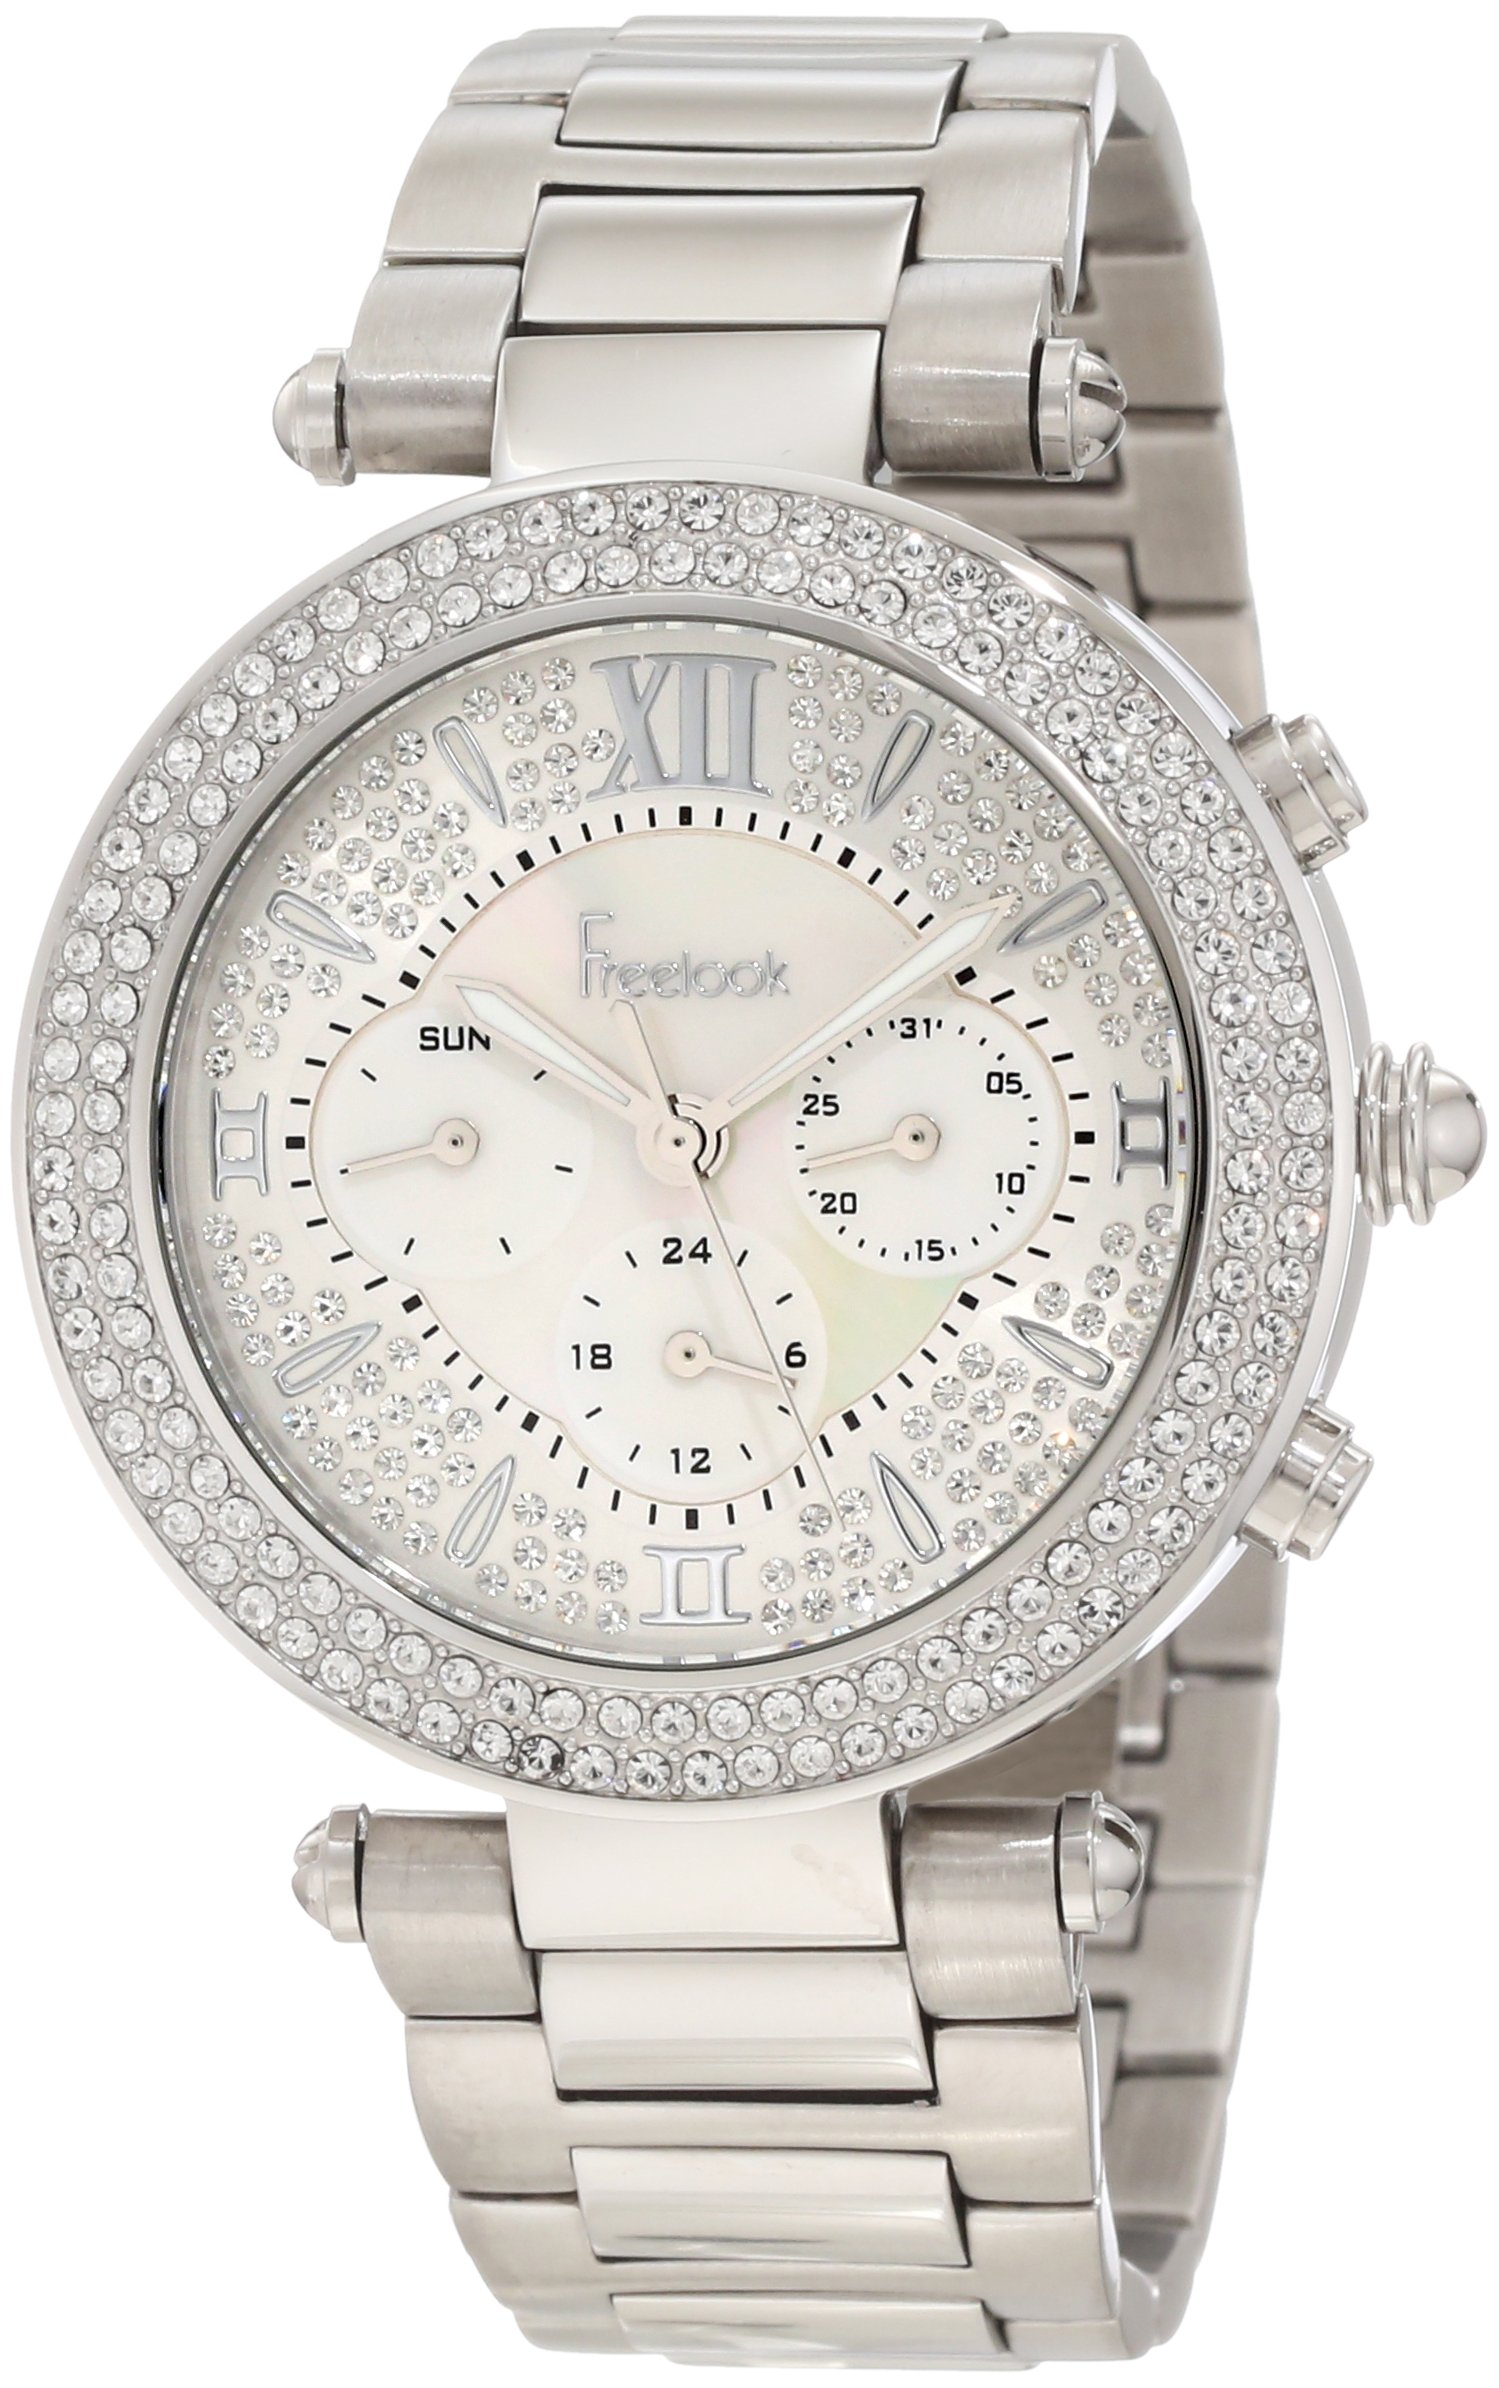 Freelook Women's HA1539-1 Full Stones Mother-Of-Pearl Chronograph Dial Silver Swarovski Bezel Watch by Freelook